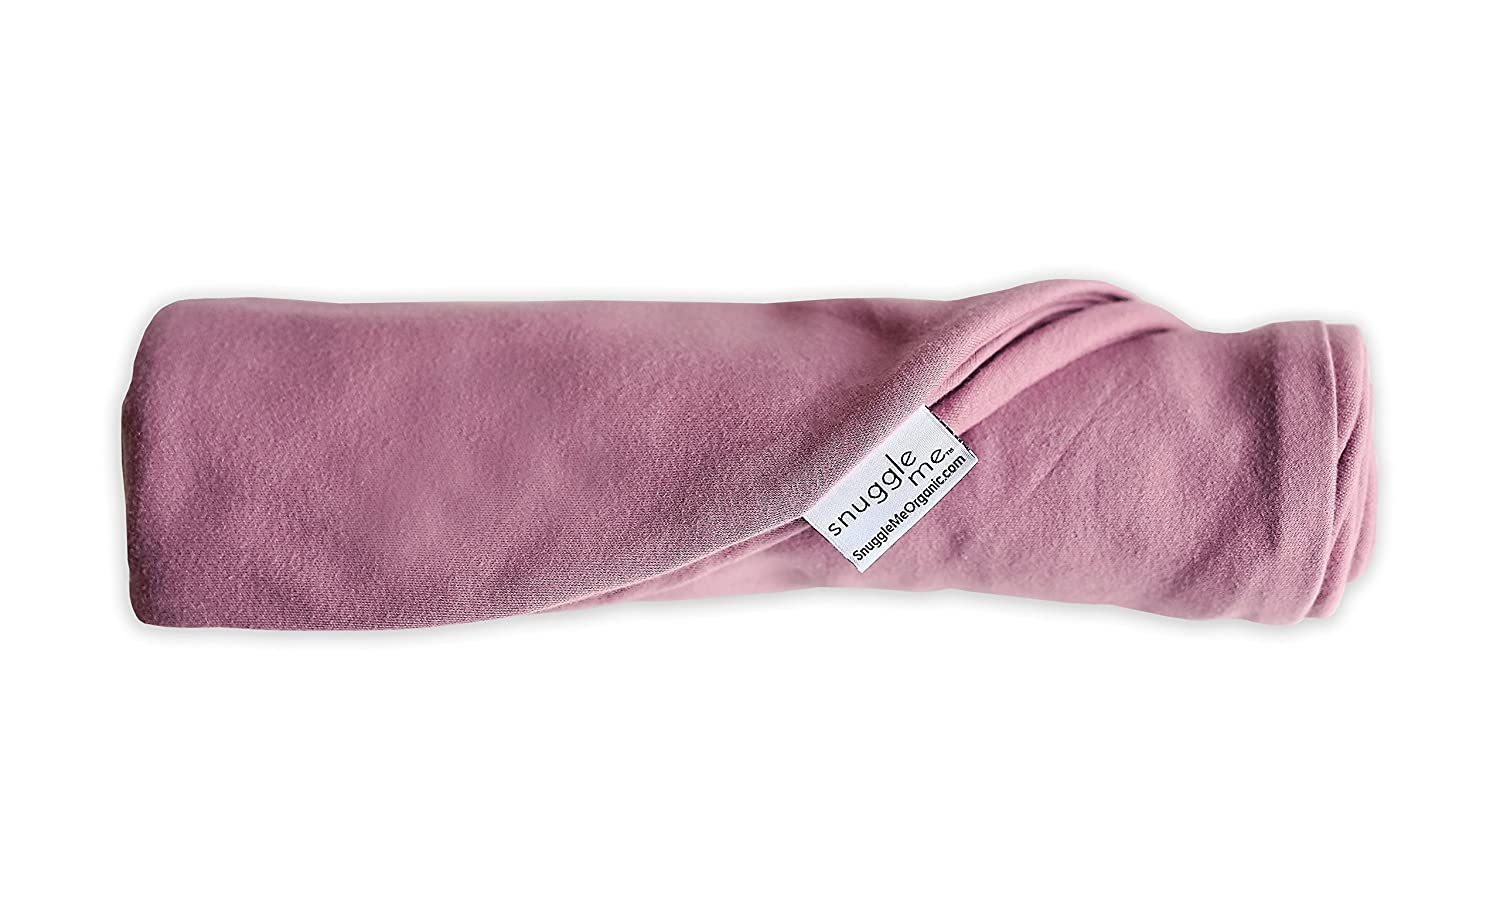 Snuggle Me Extra Organic Cotton Cover for the Snuggle Me Infant Padded Loungers with Center Sling, Ember